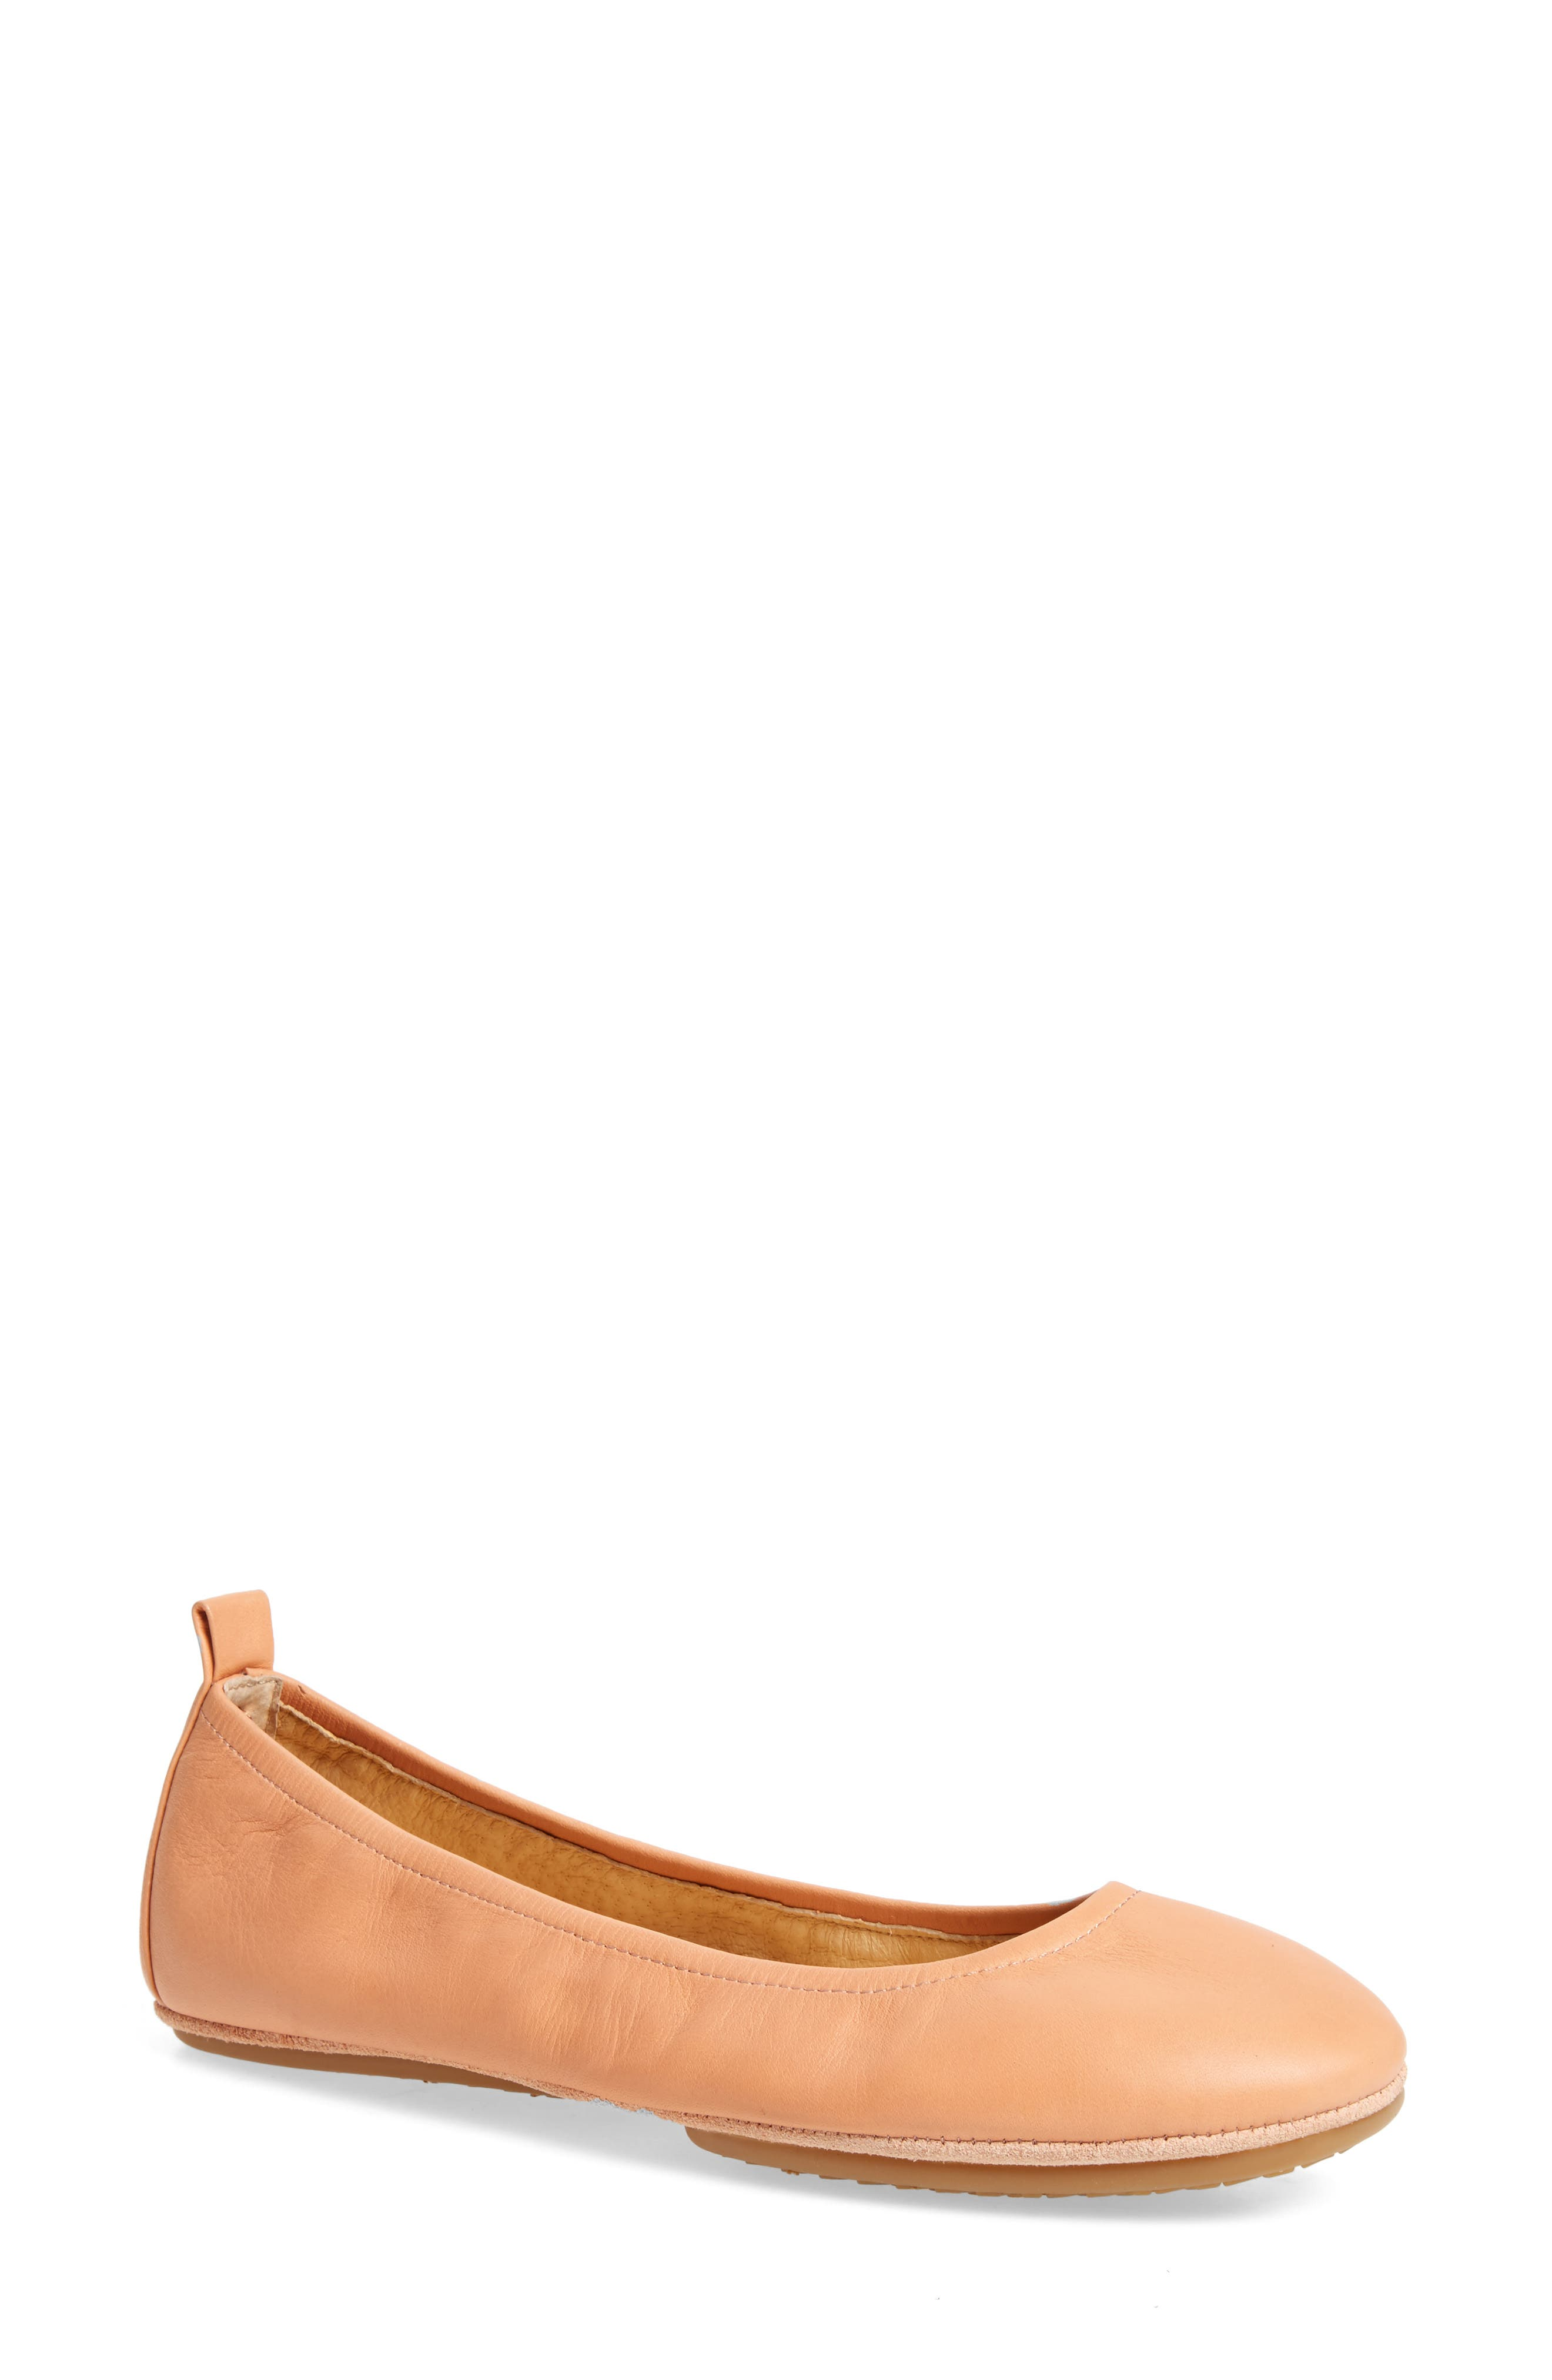 Stella Foldable Ballet Flat,                         Main,                         color, Clay